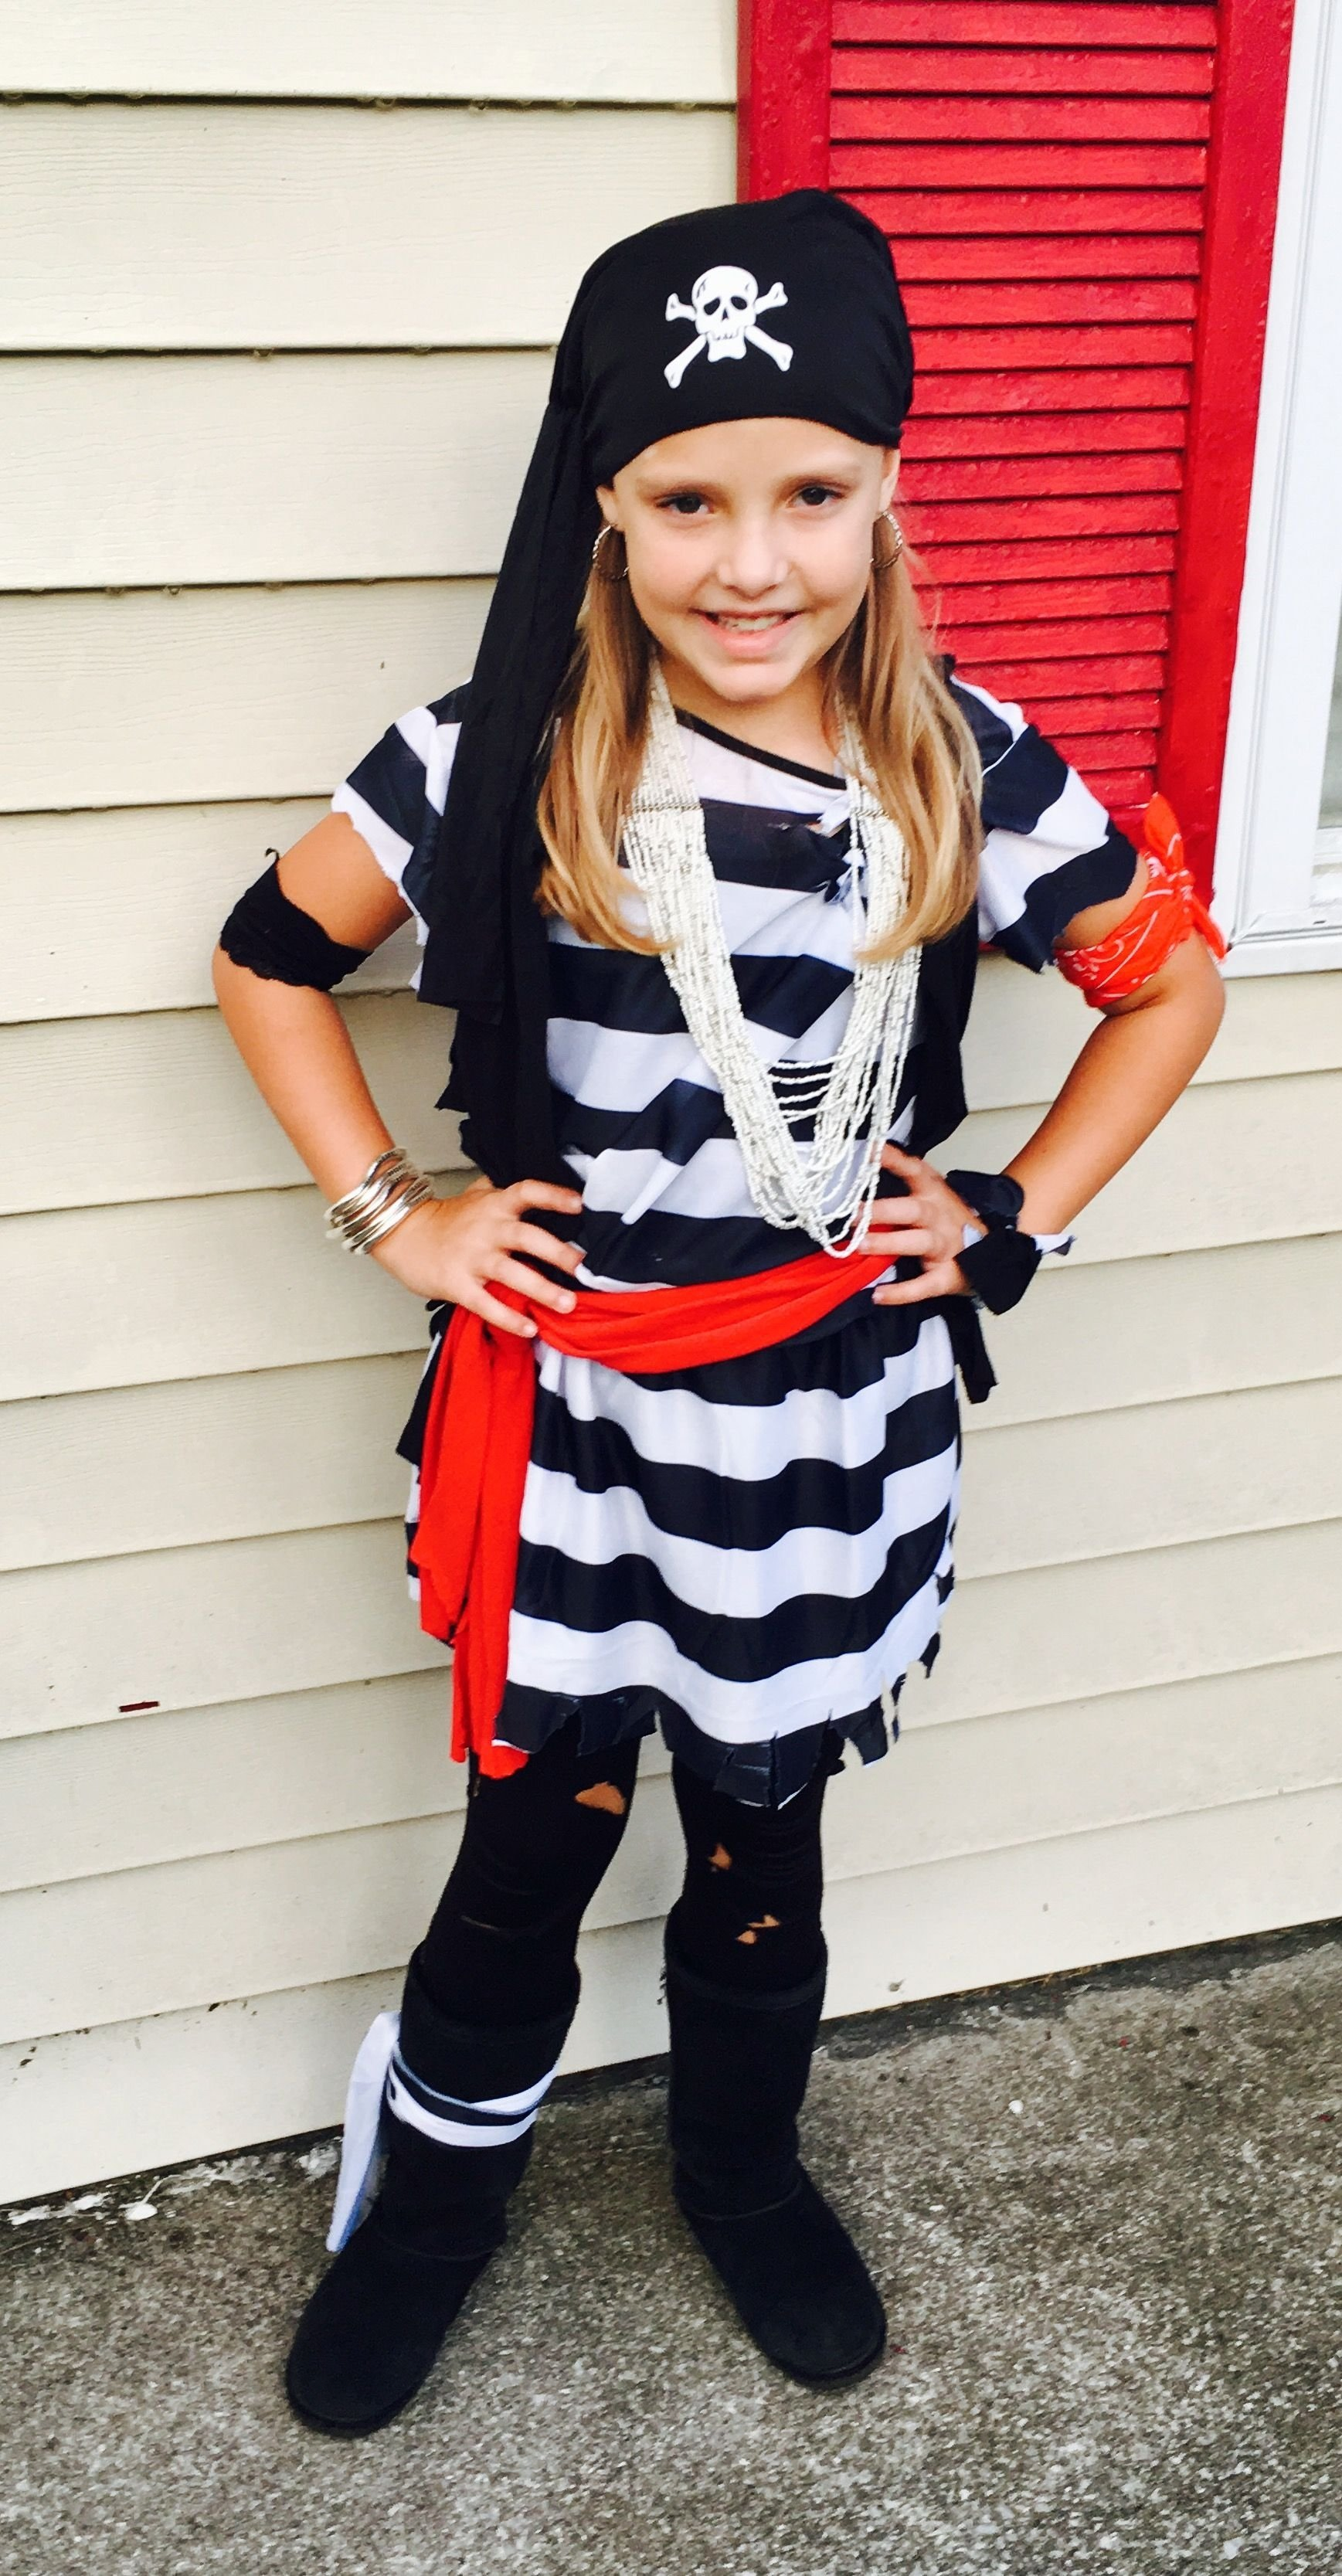 10 Great Pirate Costume Ideas For Kids easy girls pirate costume made from cheap adult size prisoner 2020